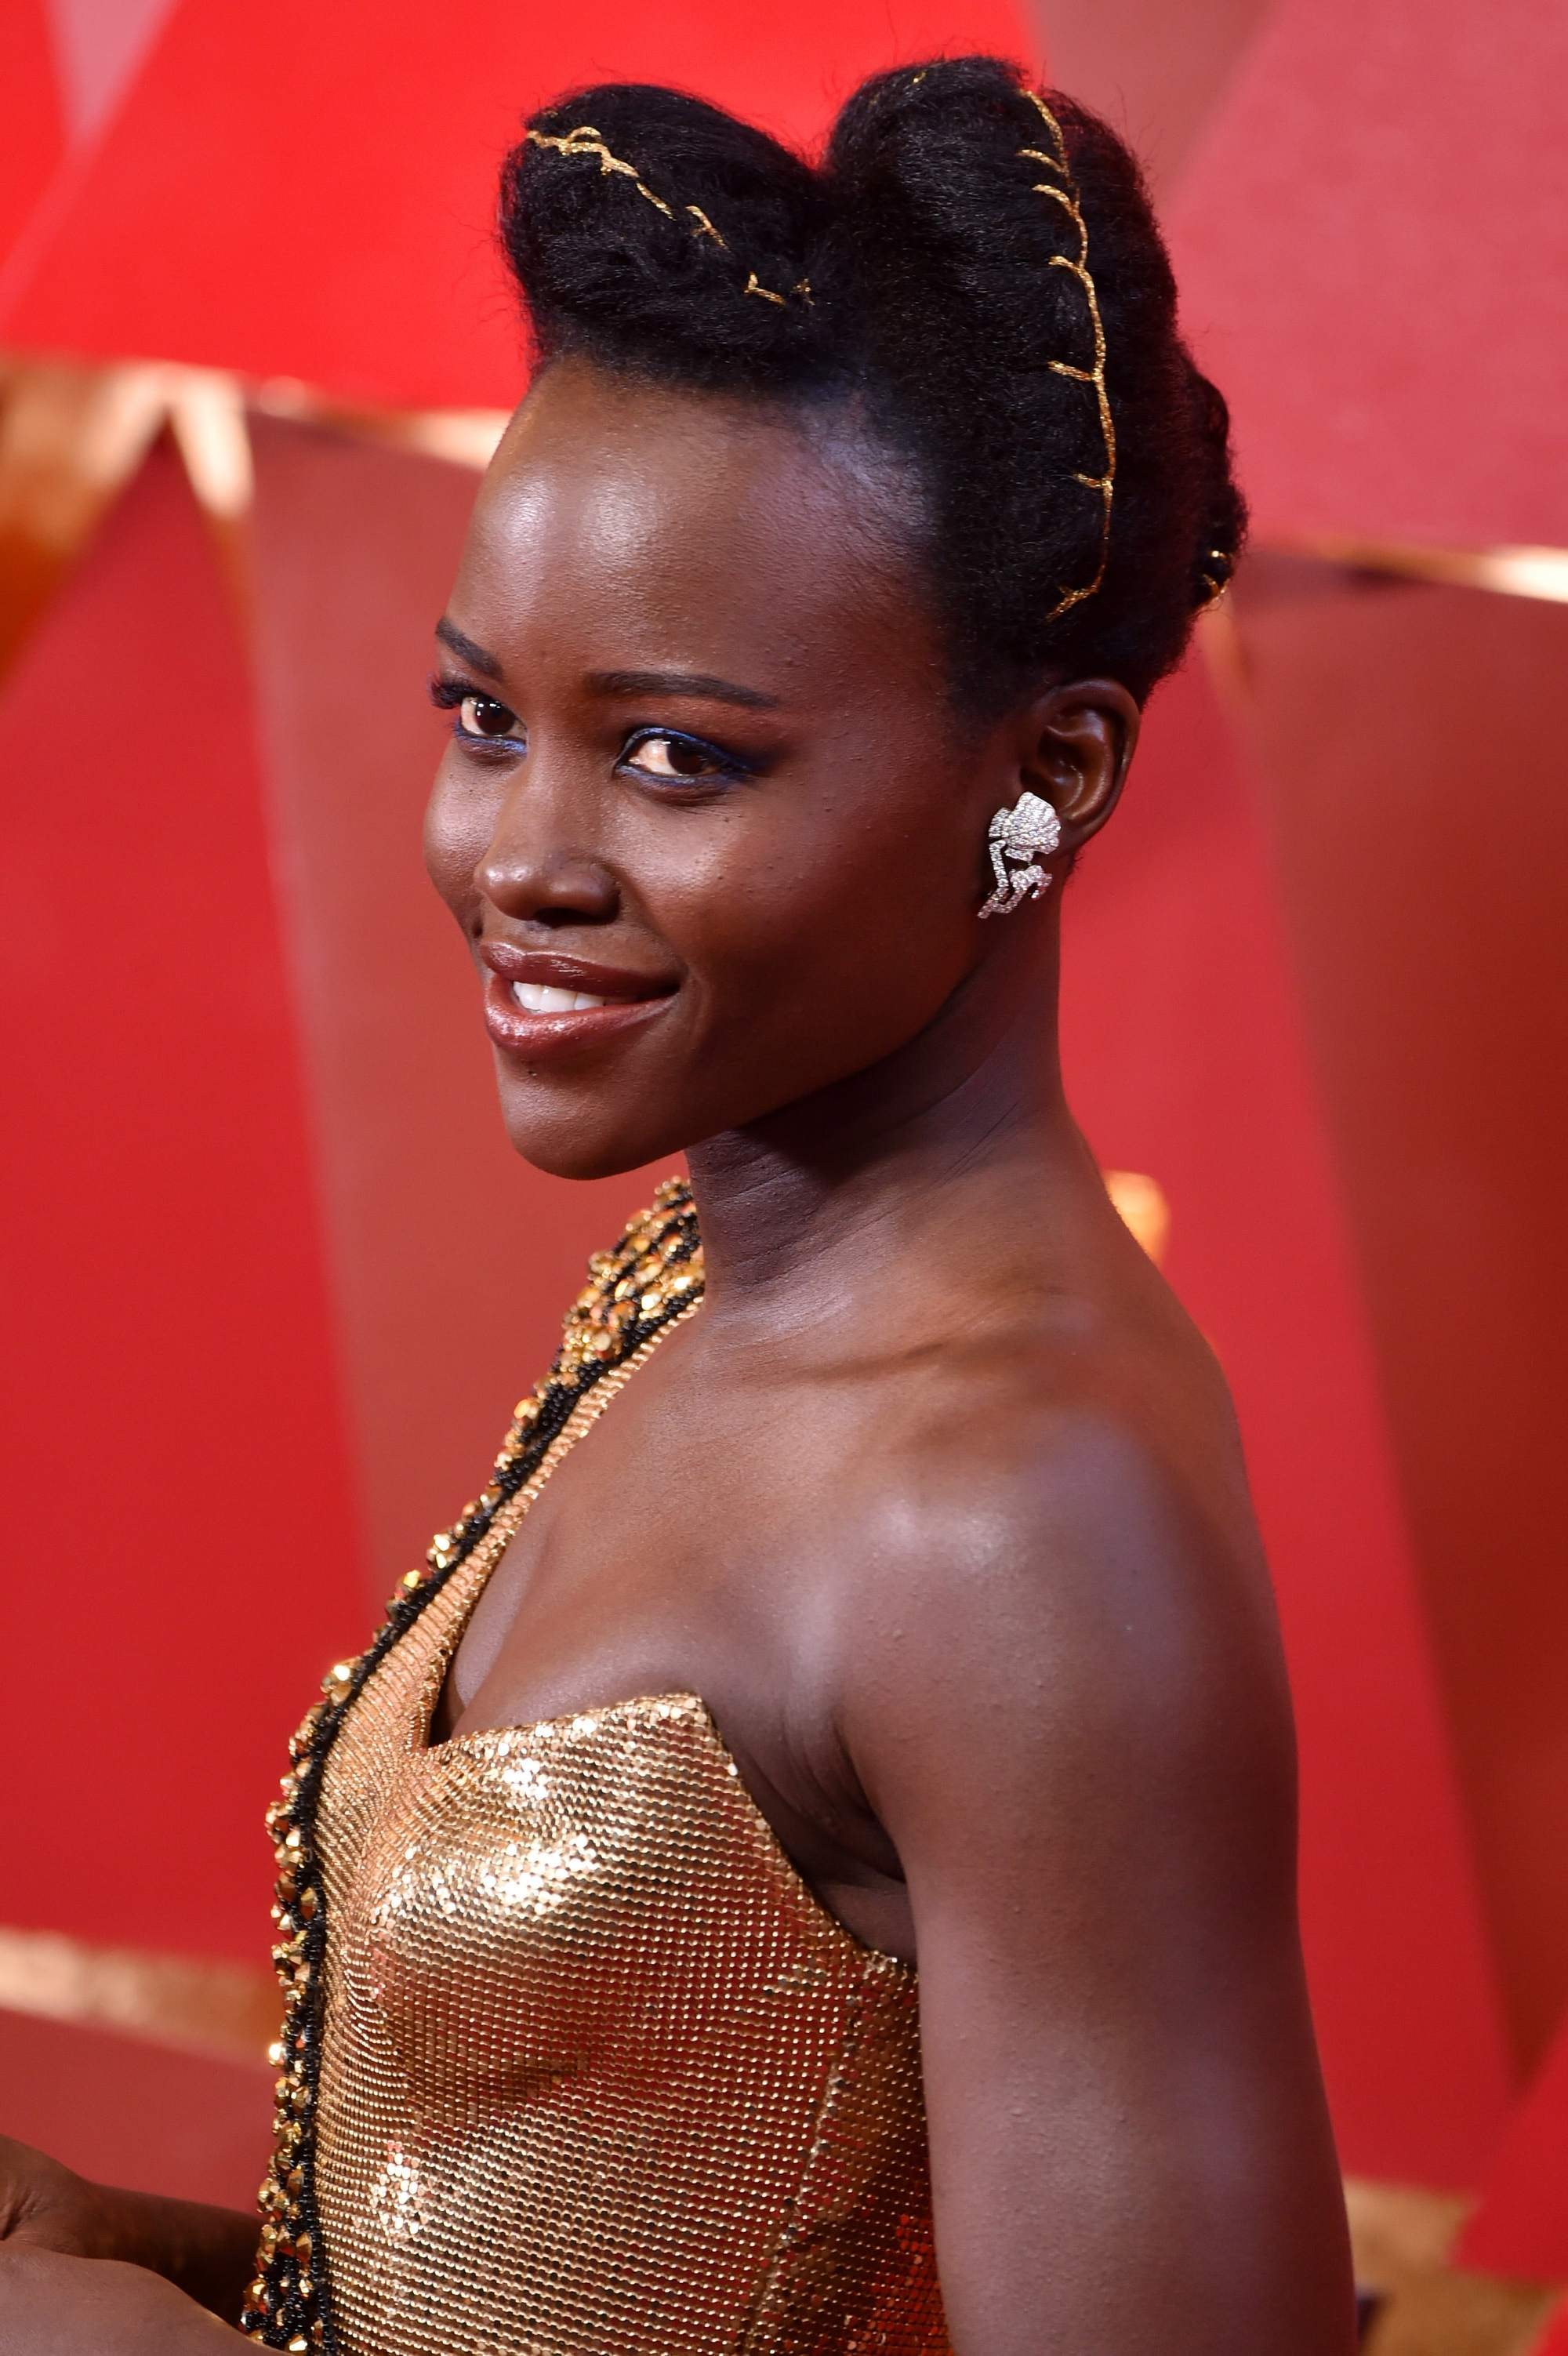 black panther actress lupita nyongo at the oscars 2018 with her hair in an updo with gold thread running through